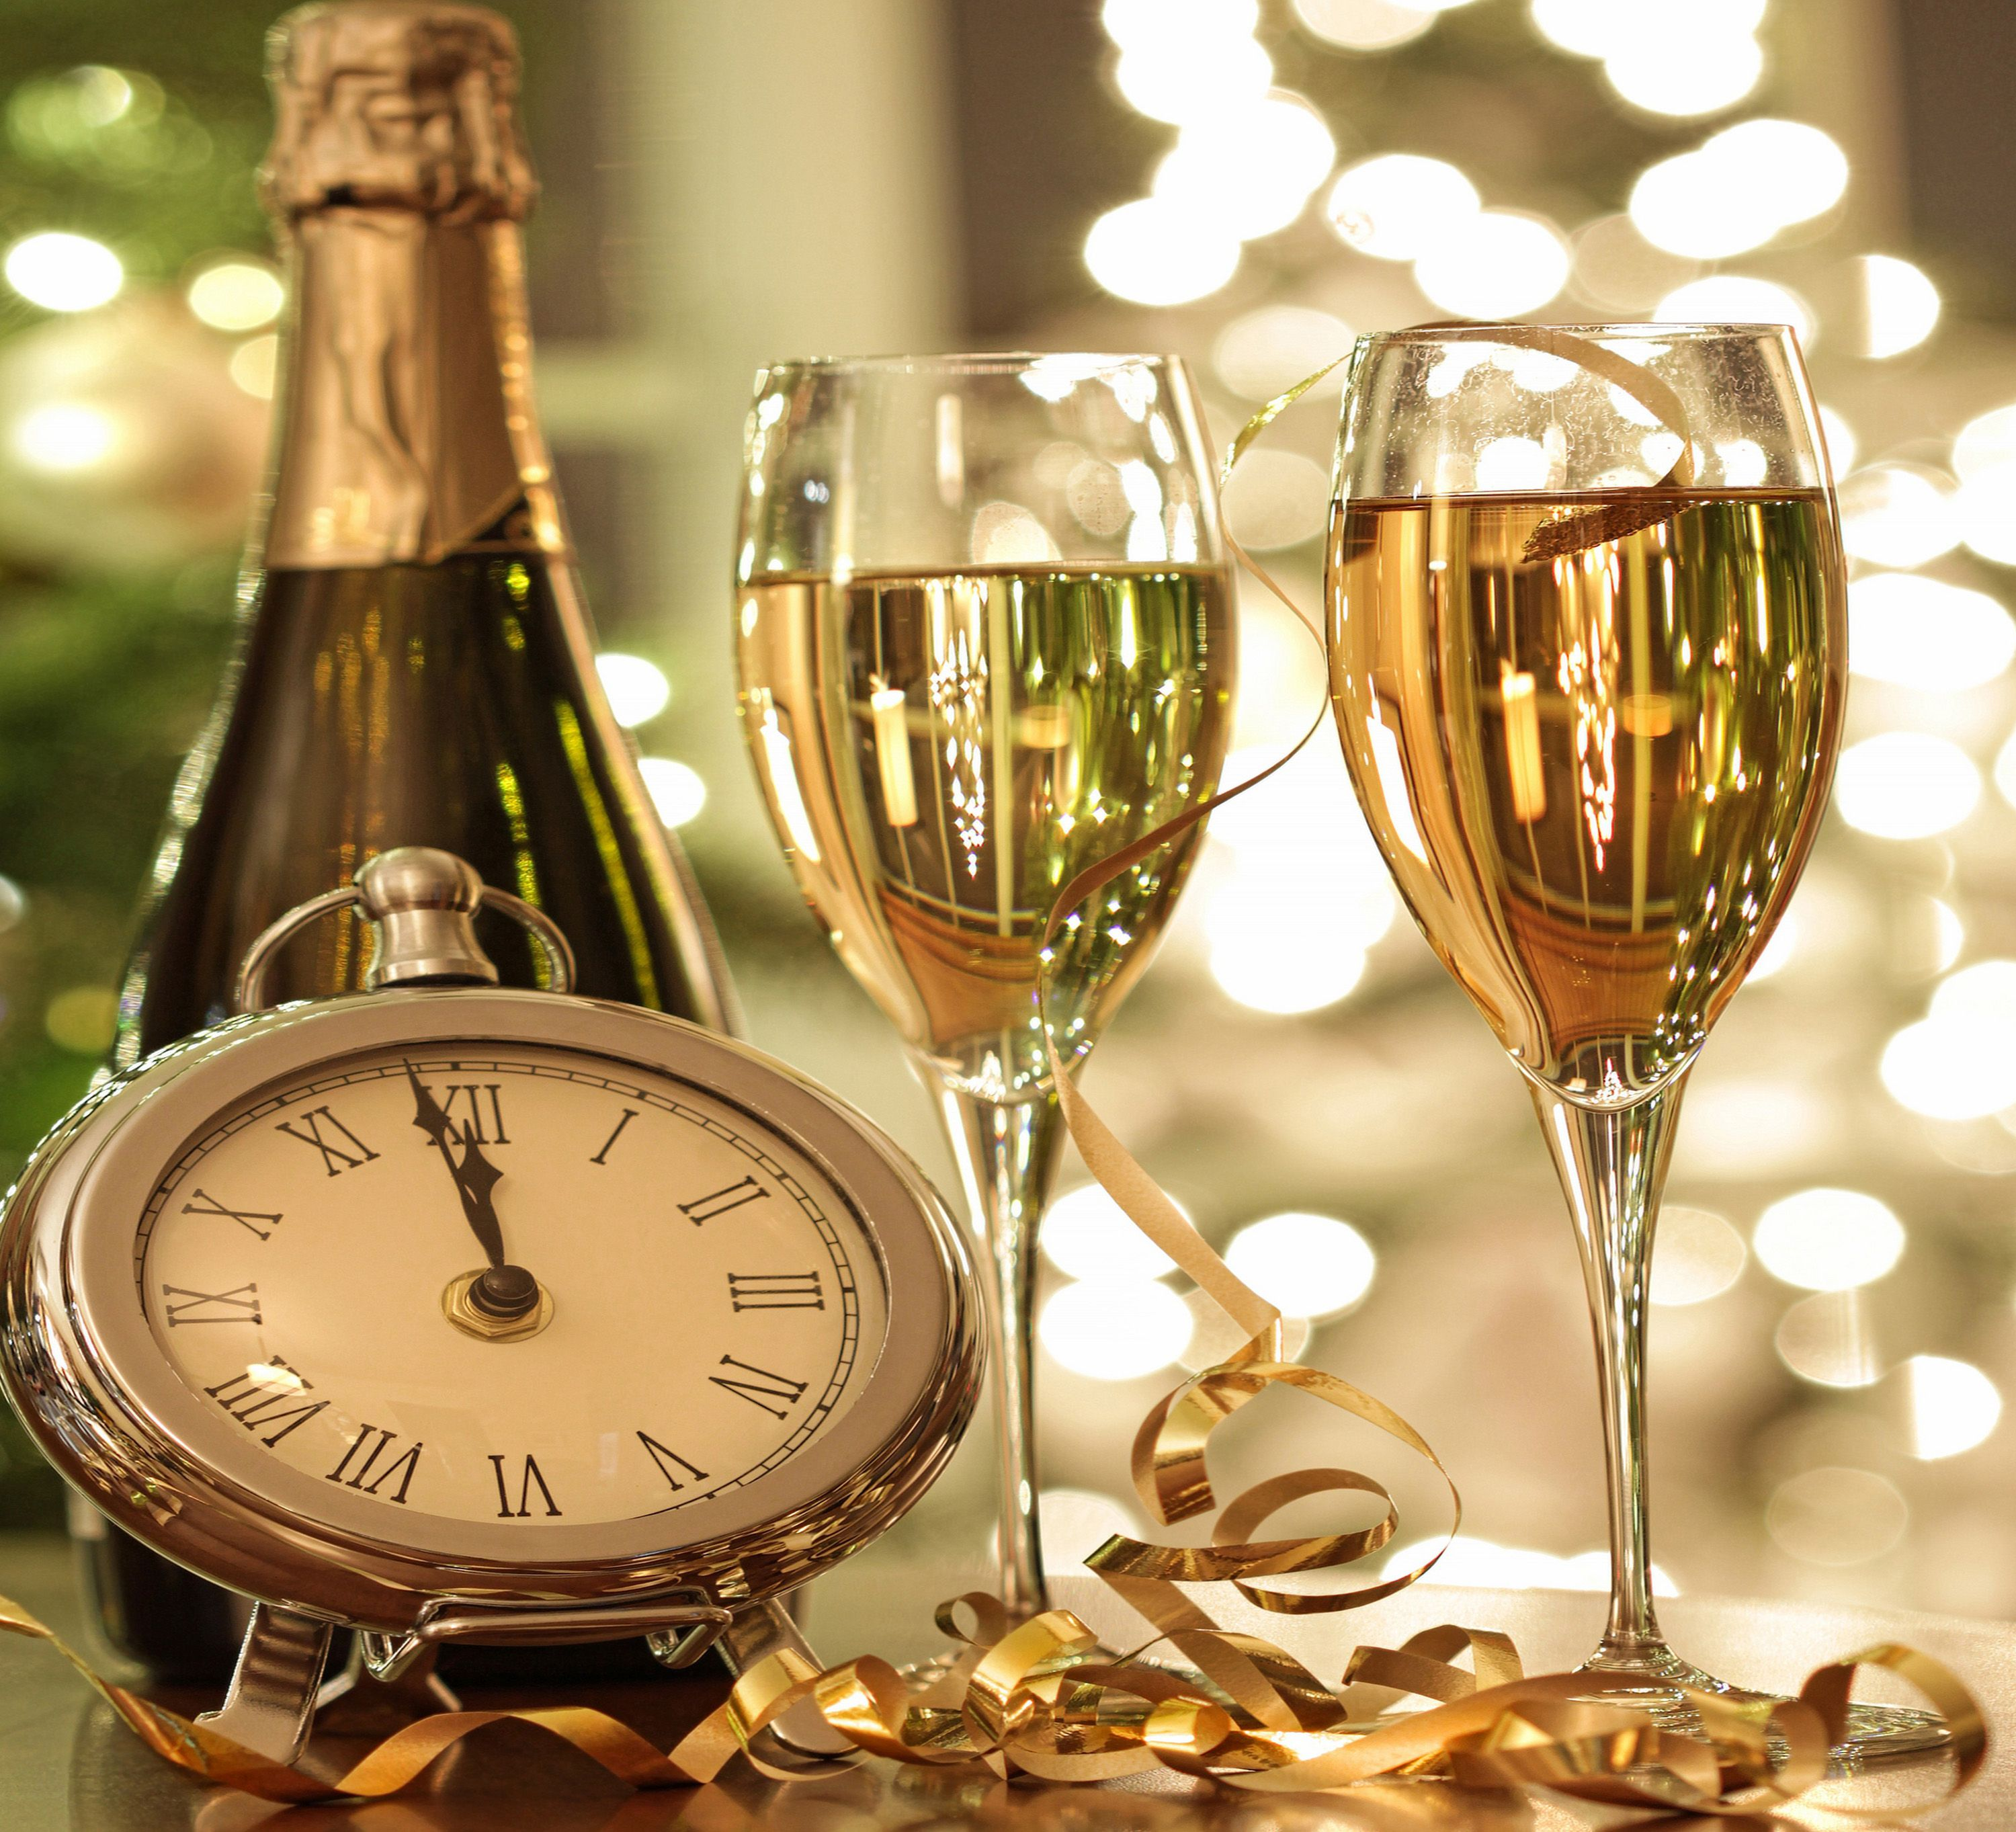 time for wine happy new year 2015 year 2016 happy